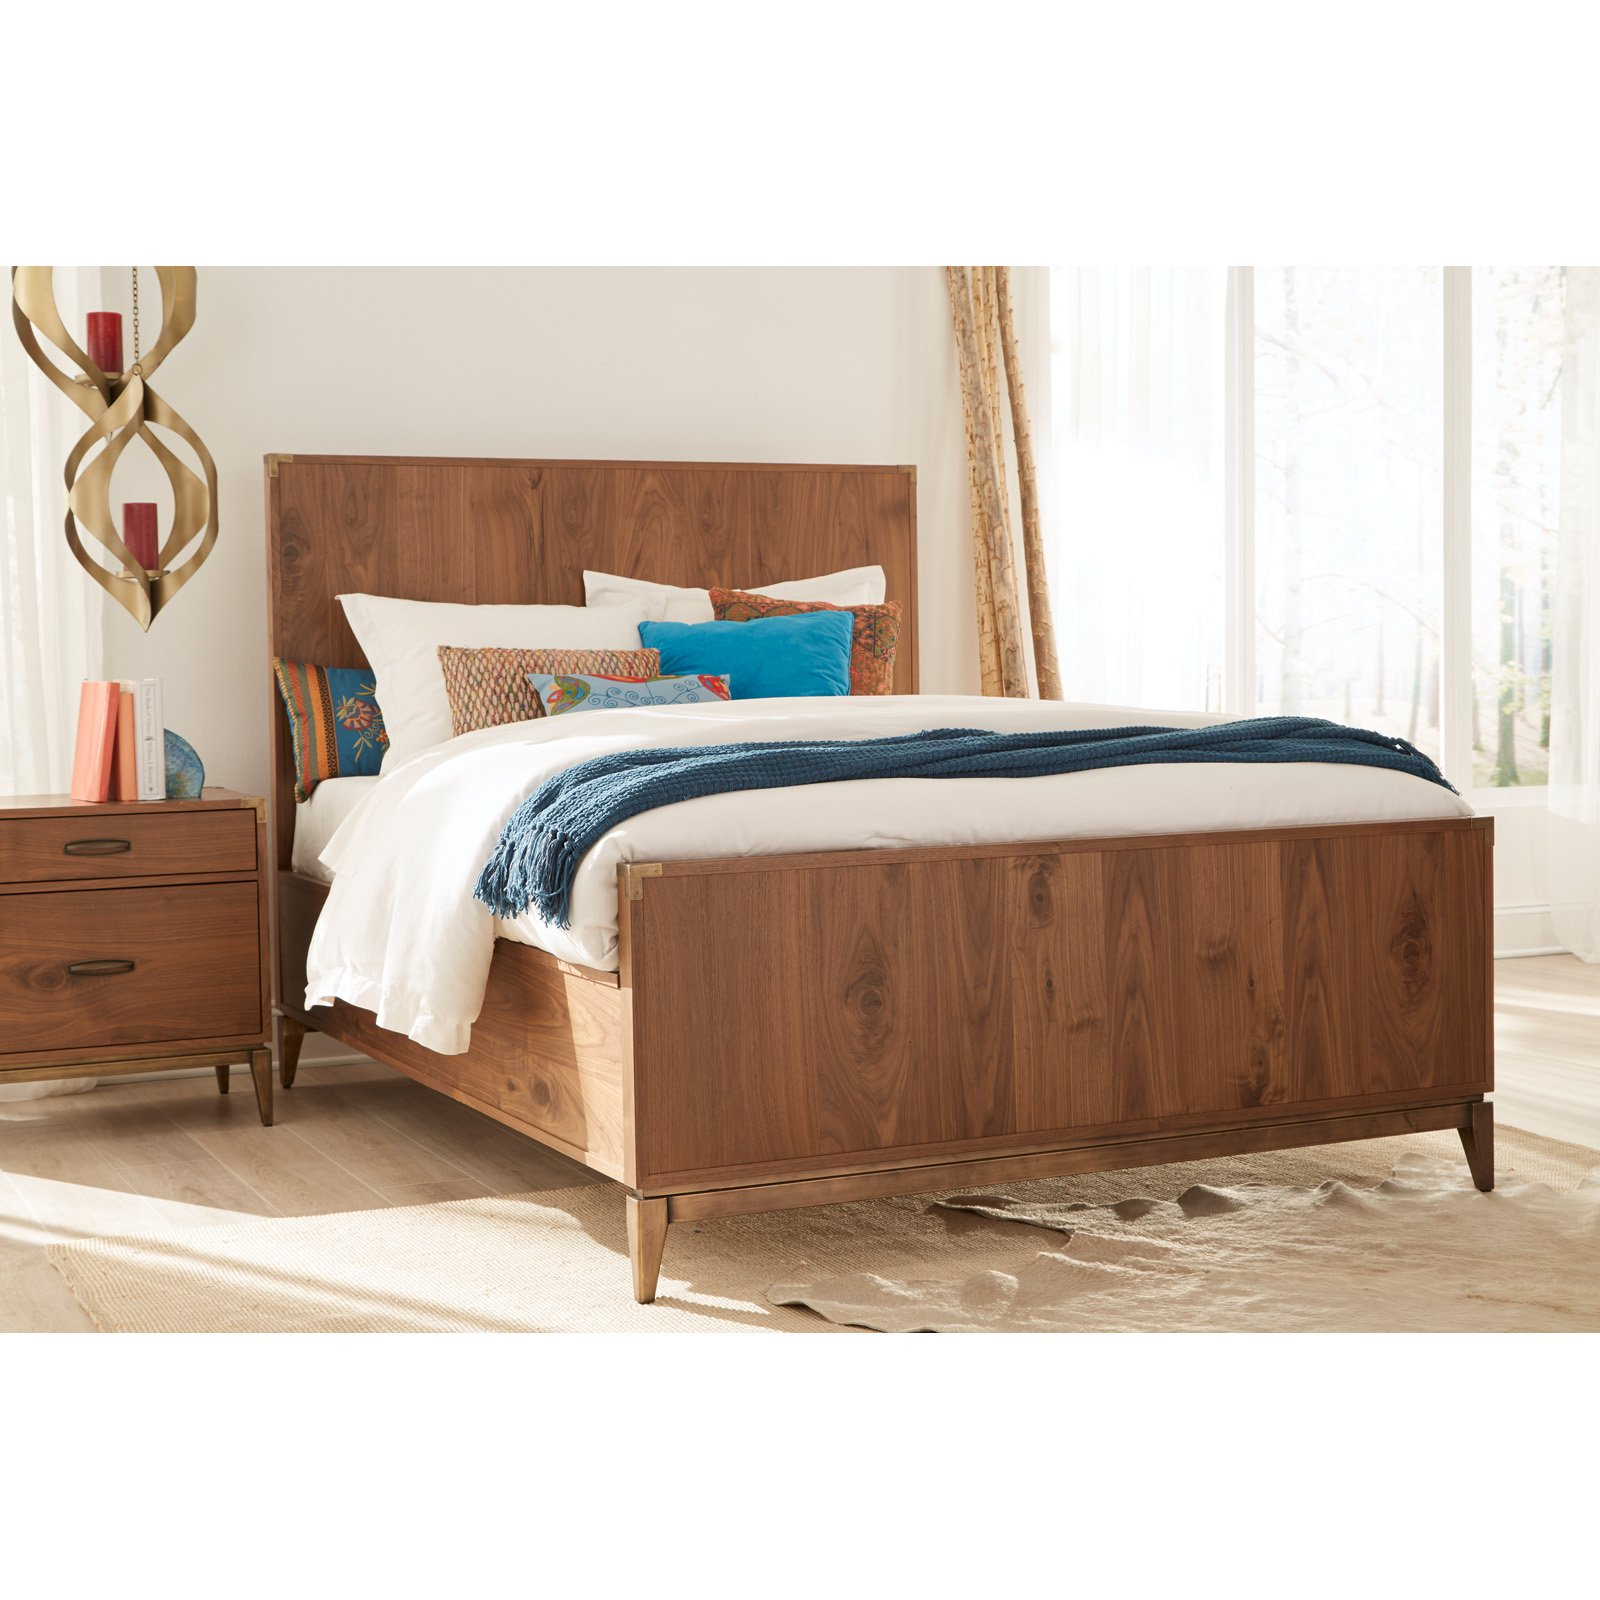 Modus Adler Low Profile Panel Bed by Modus Furniture